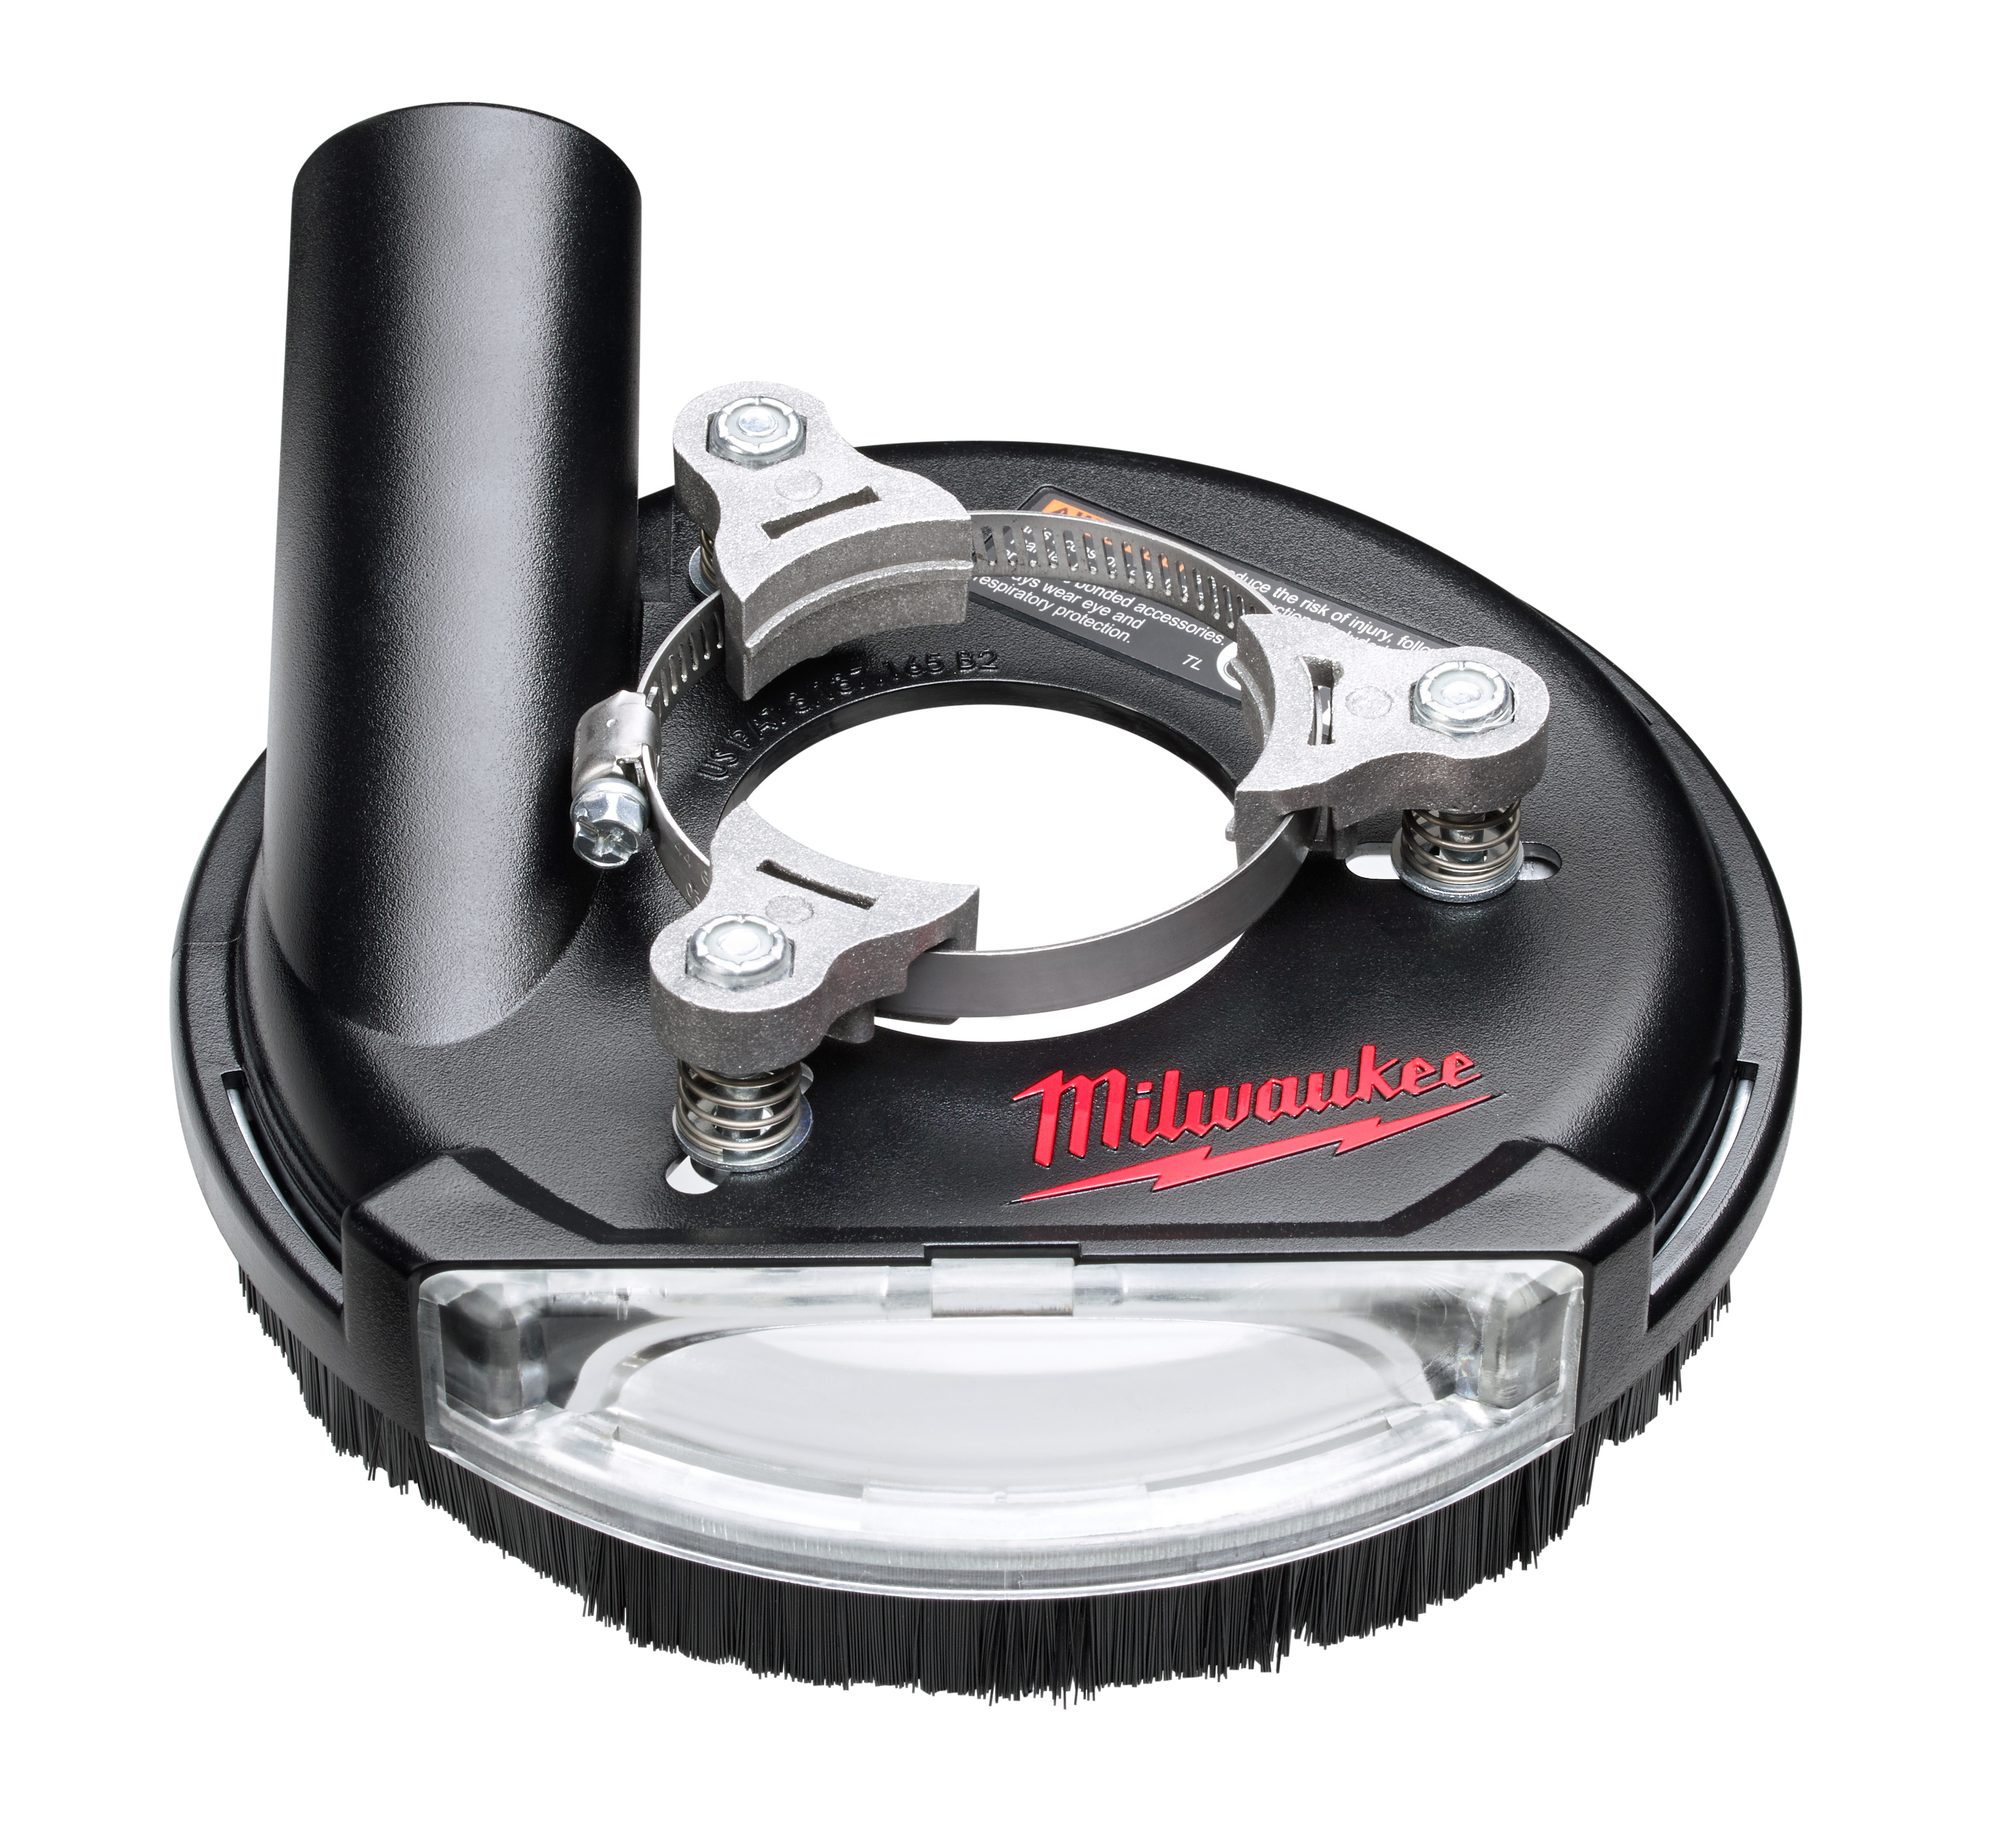 Milwaukee® 49-40-6100 Universal Surface Dust Shroud, For Use With Universal Grinder, 5/16 in H Collar, 9/32 in H Min Insert, 1 and 1-2 to 2 and 3-16 in Fits Collar Dia